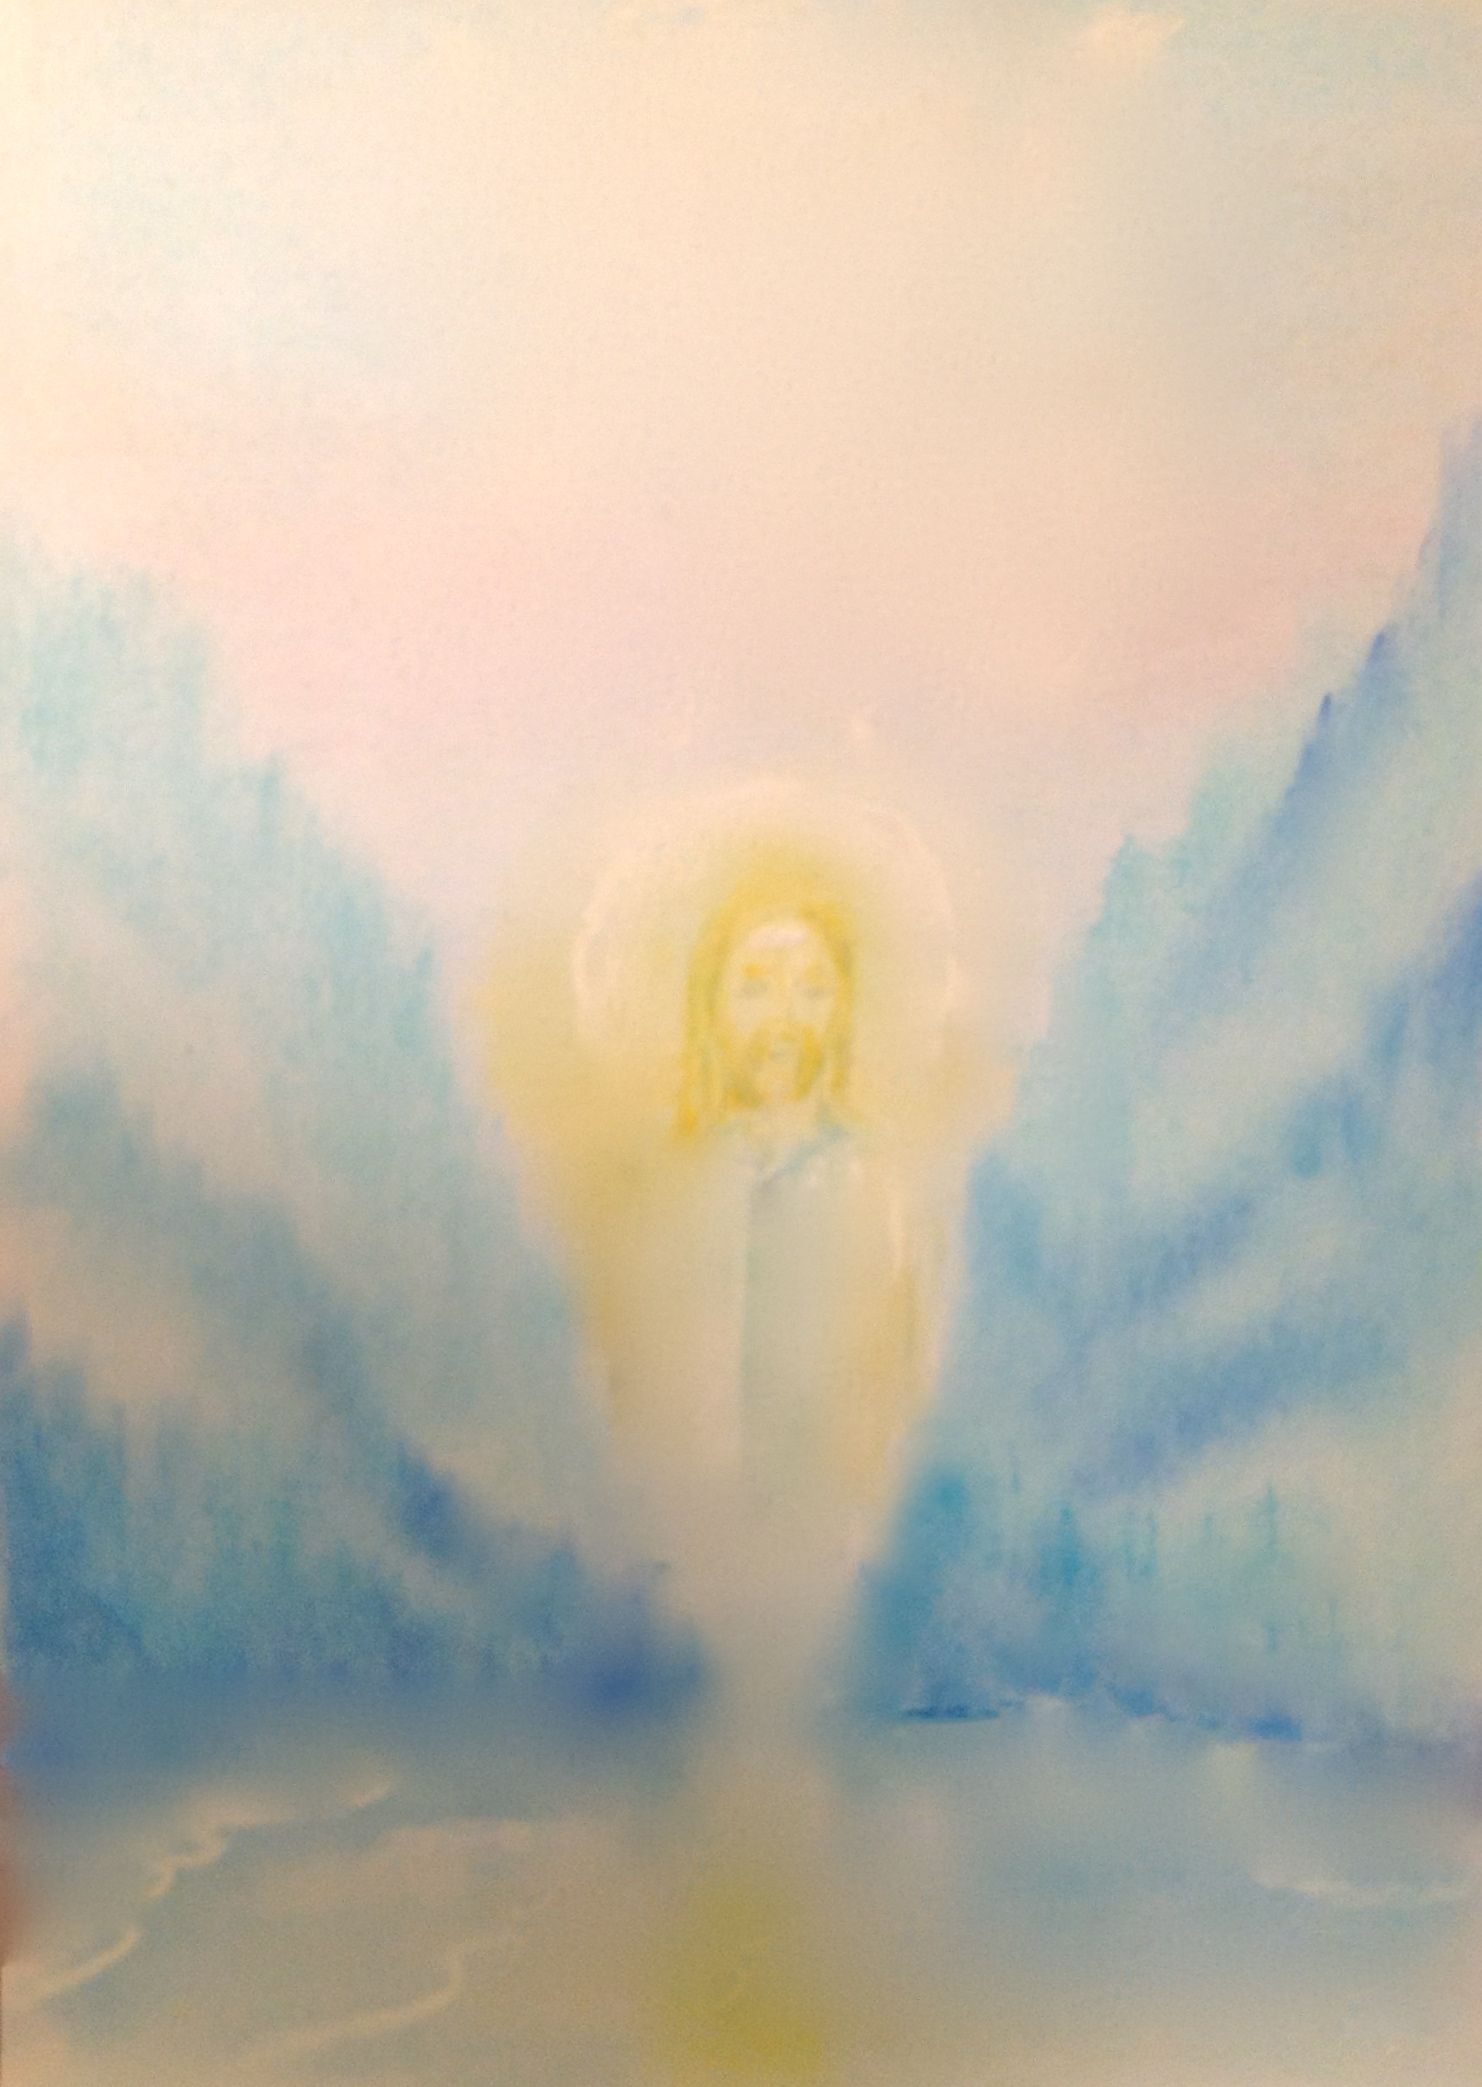 the etheric Christ